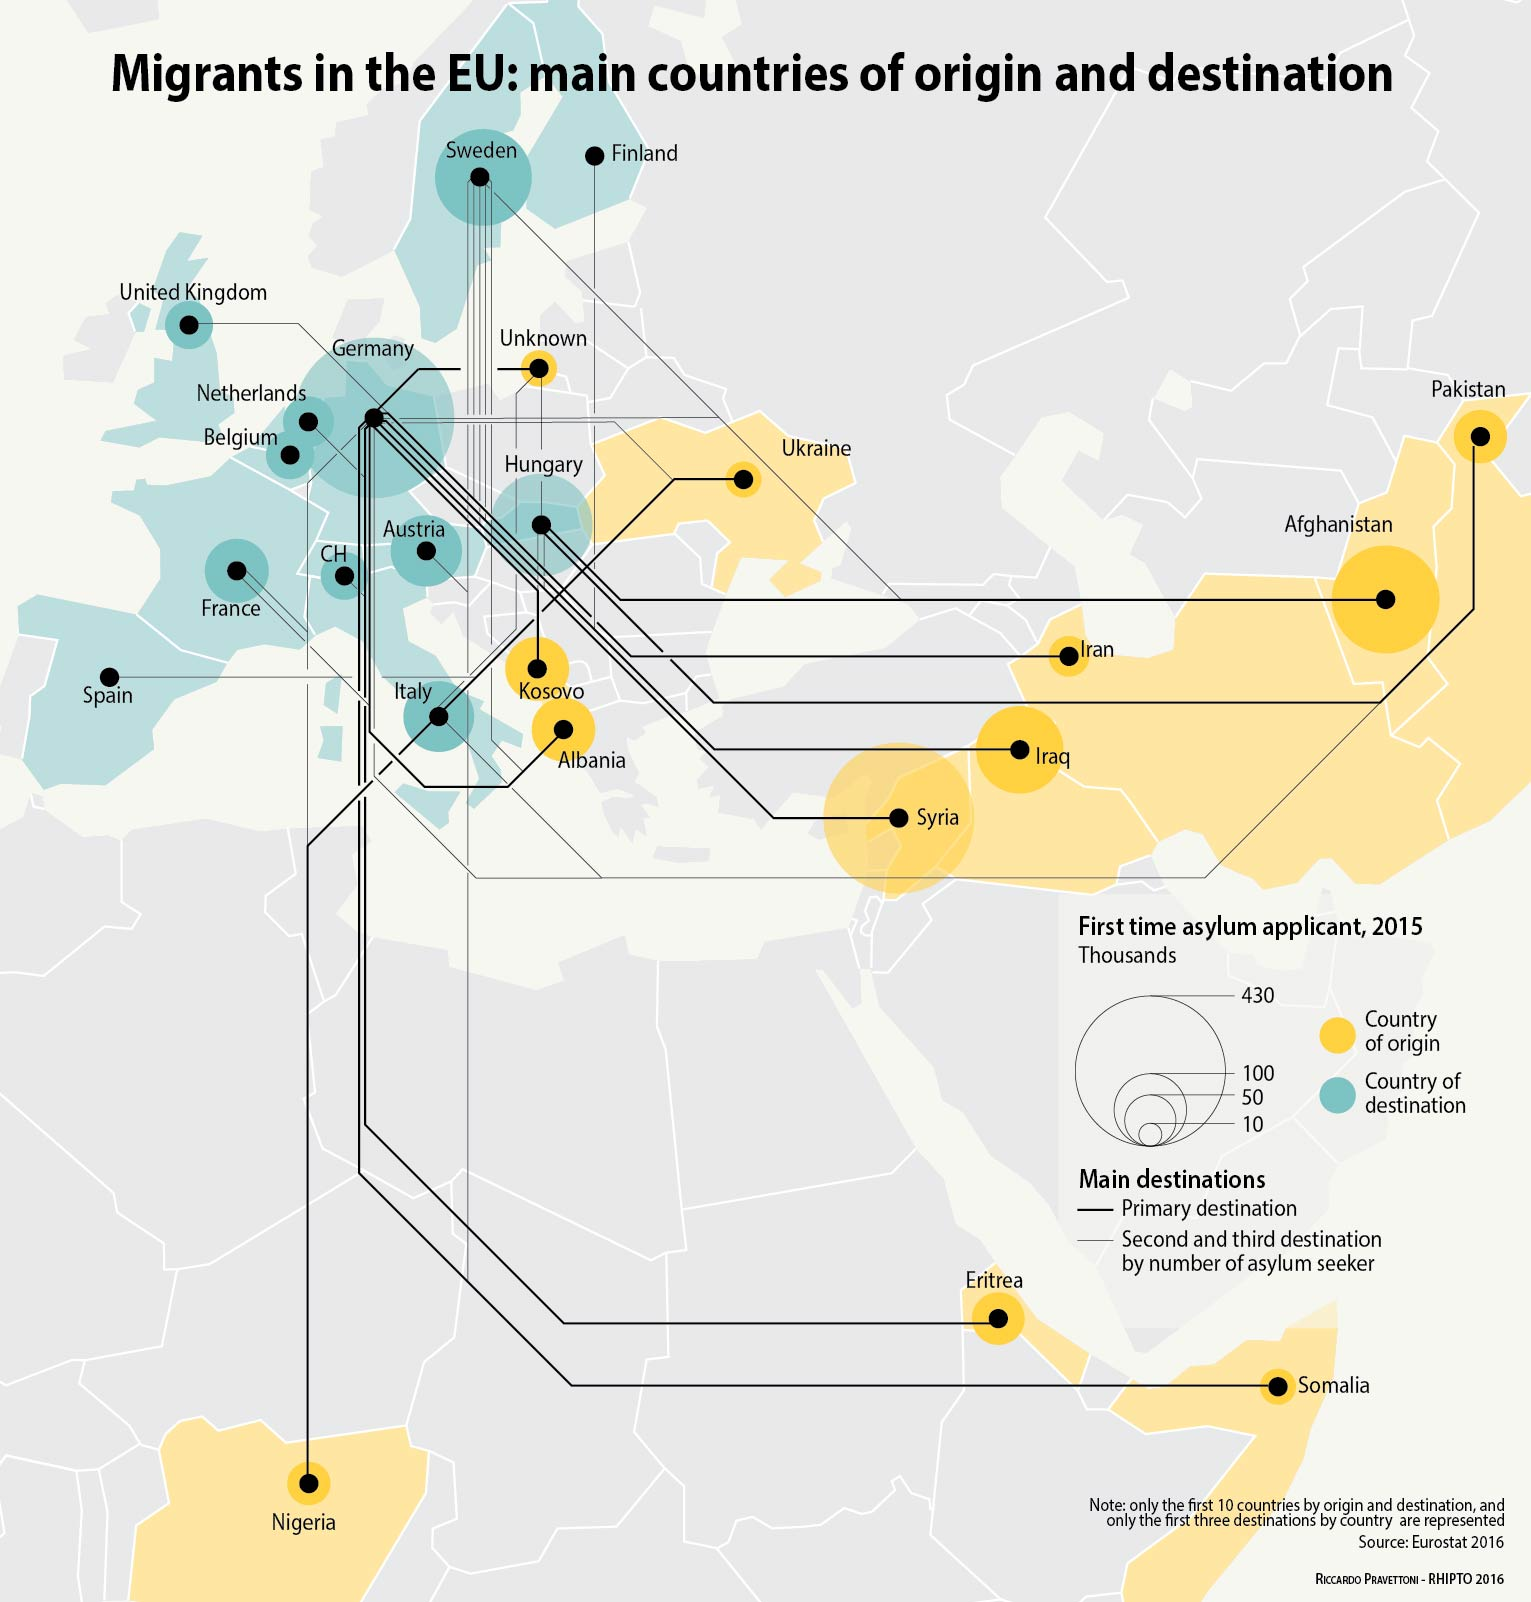 Migrants origin and destination